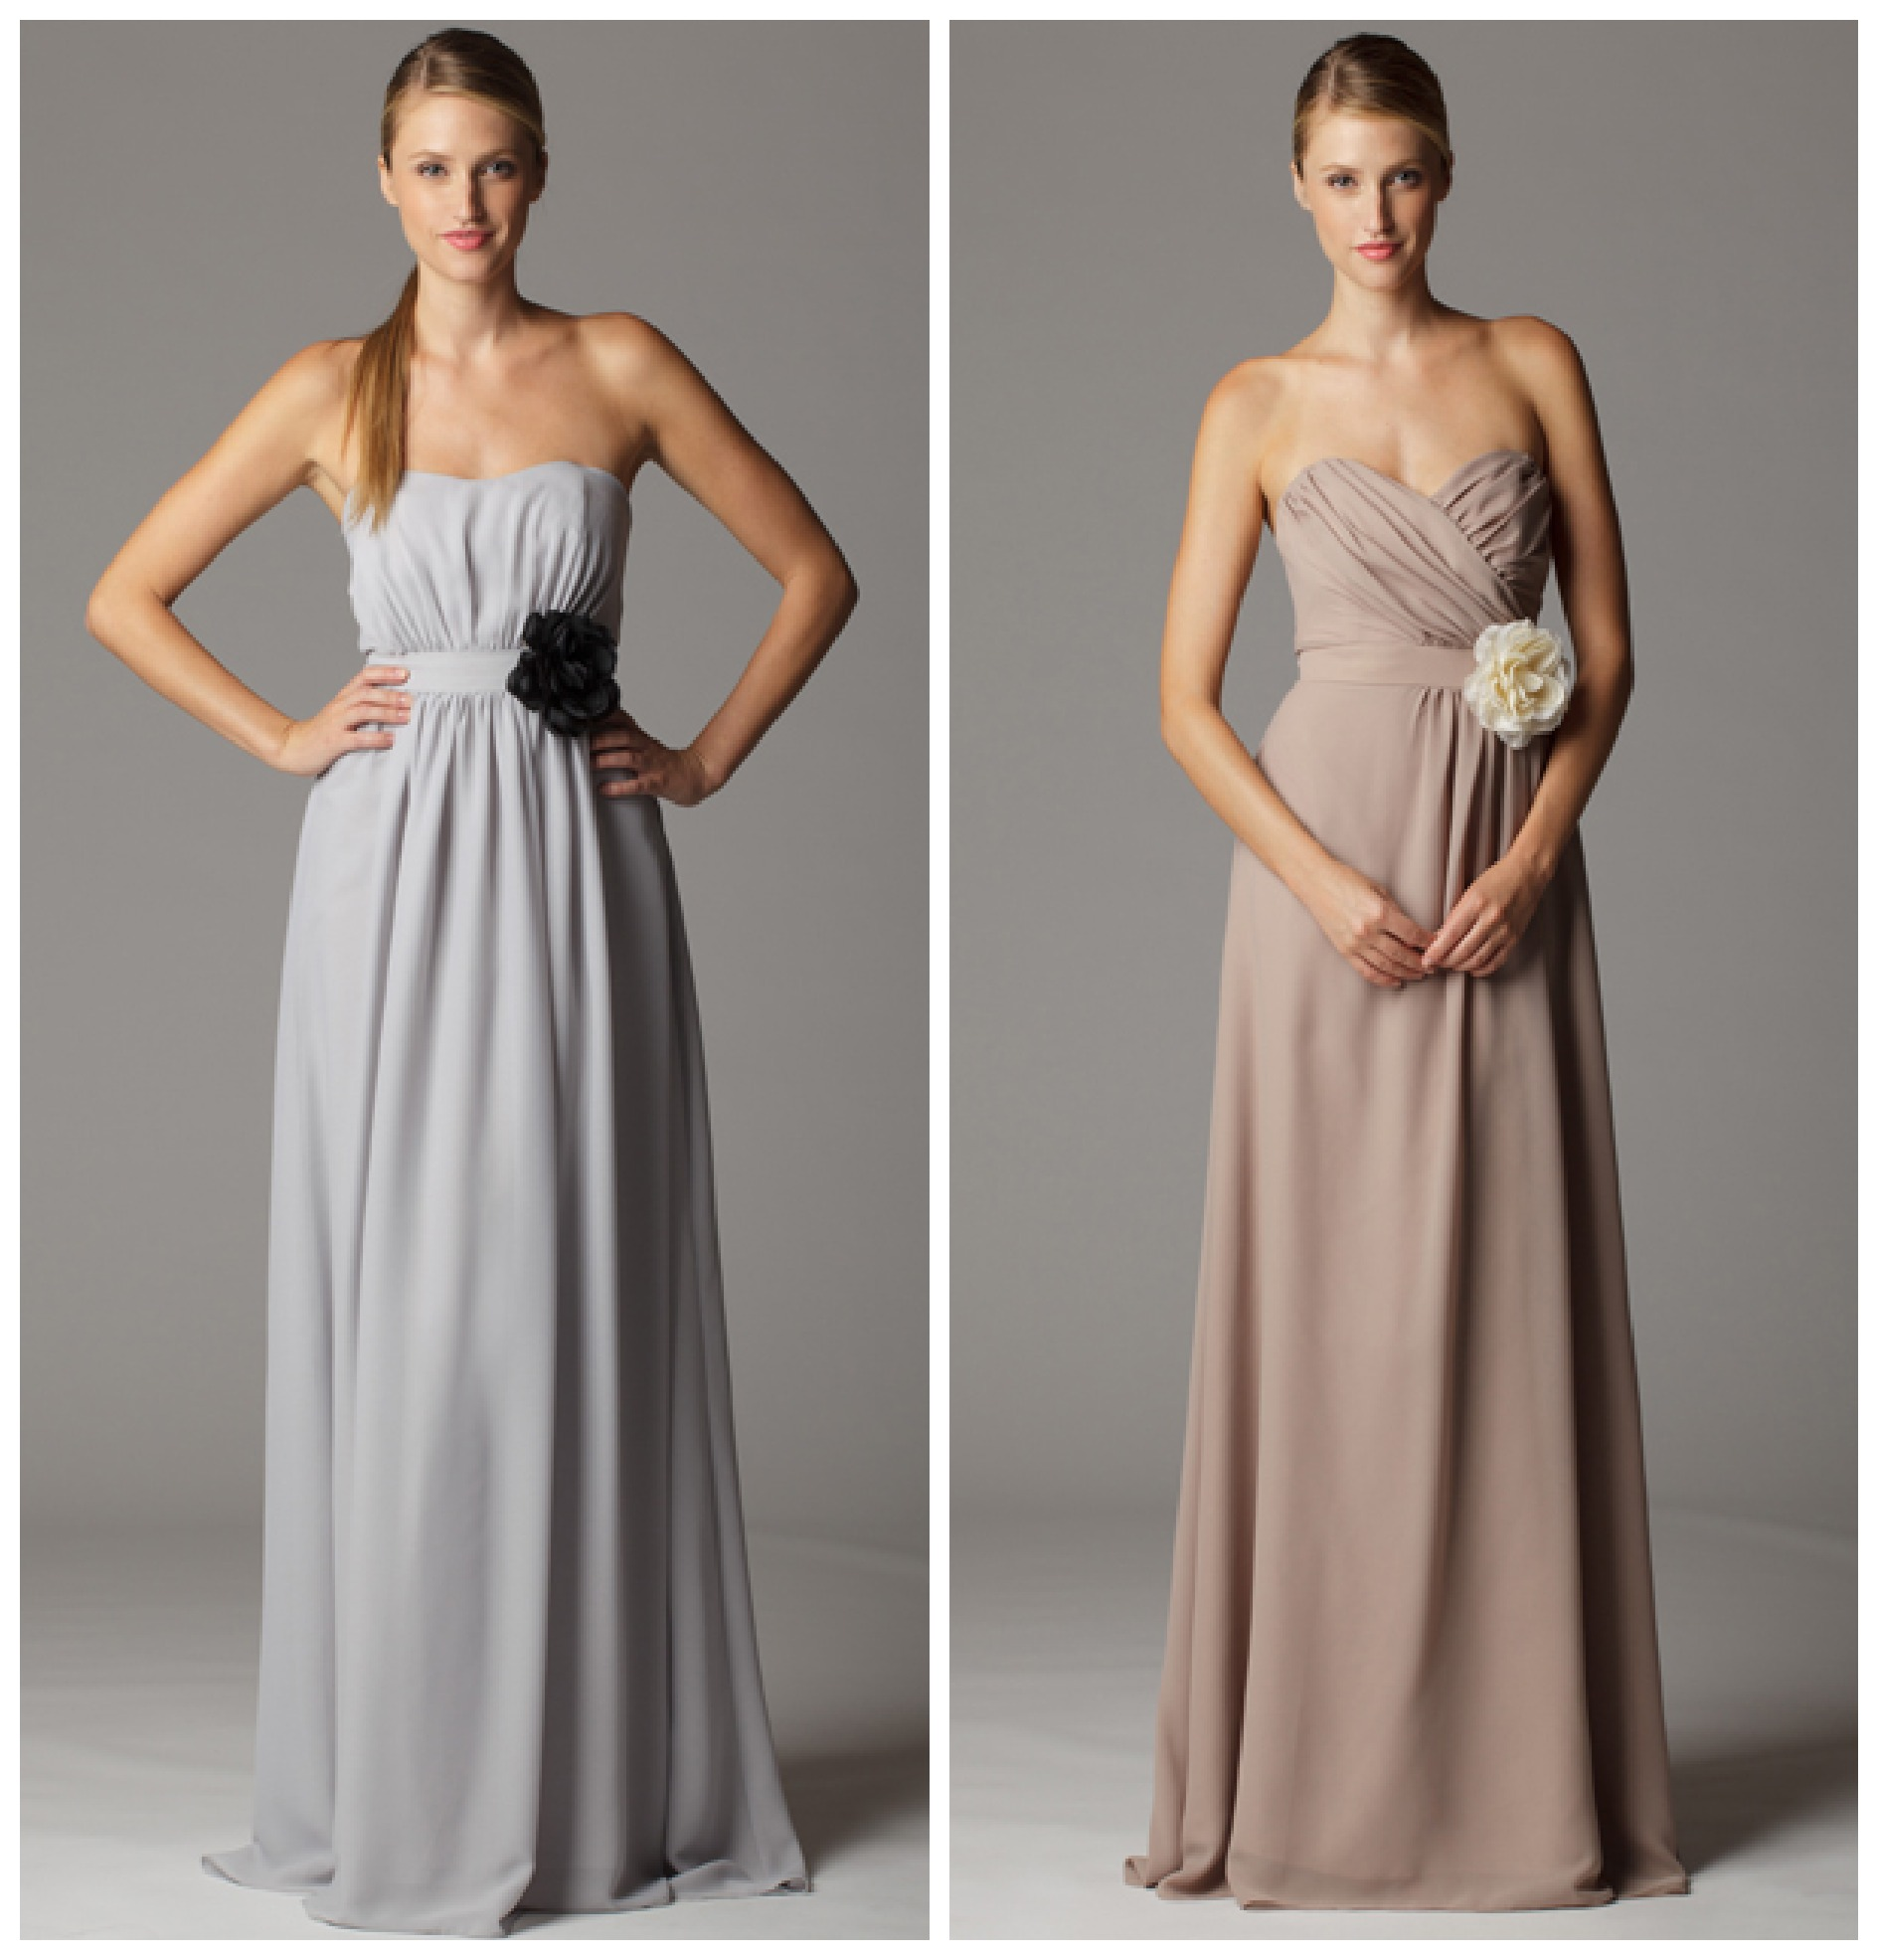 soft flowy bridesmaid dresses rustic wedding chic